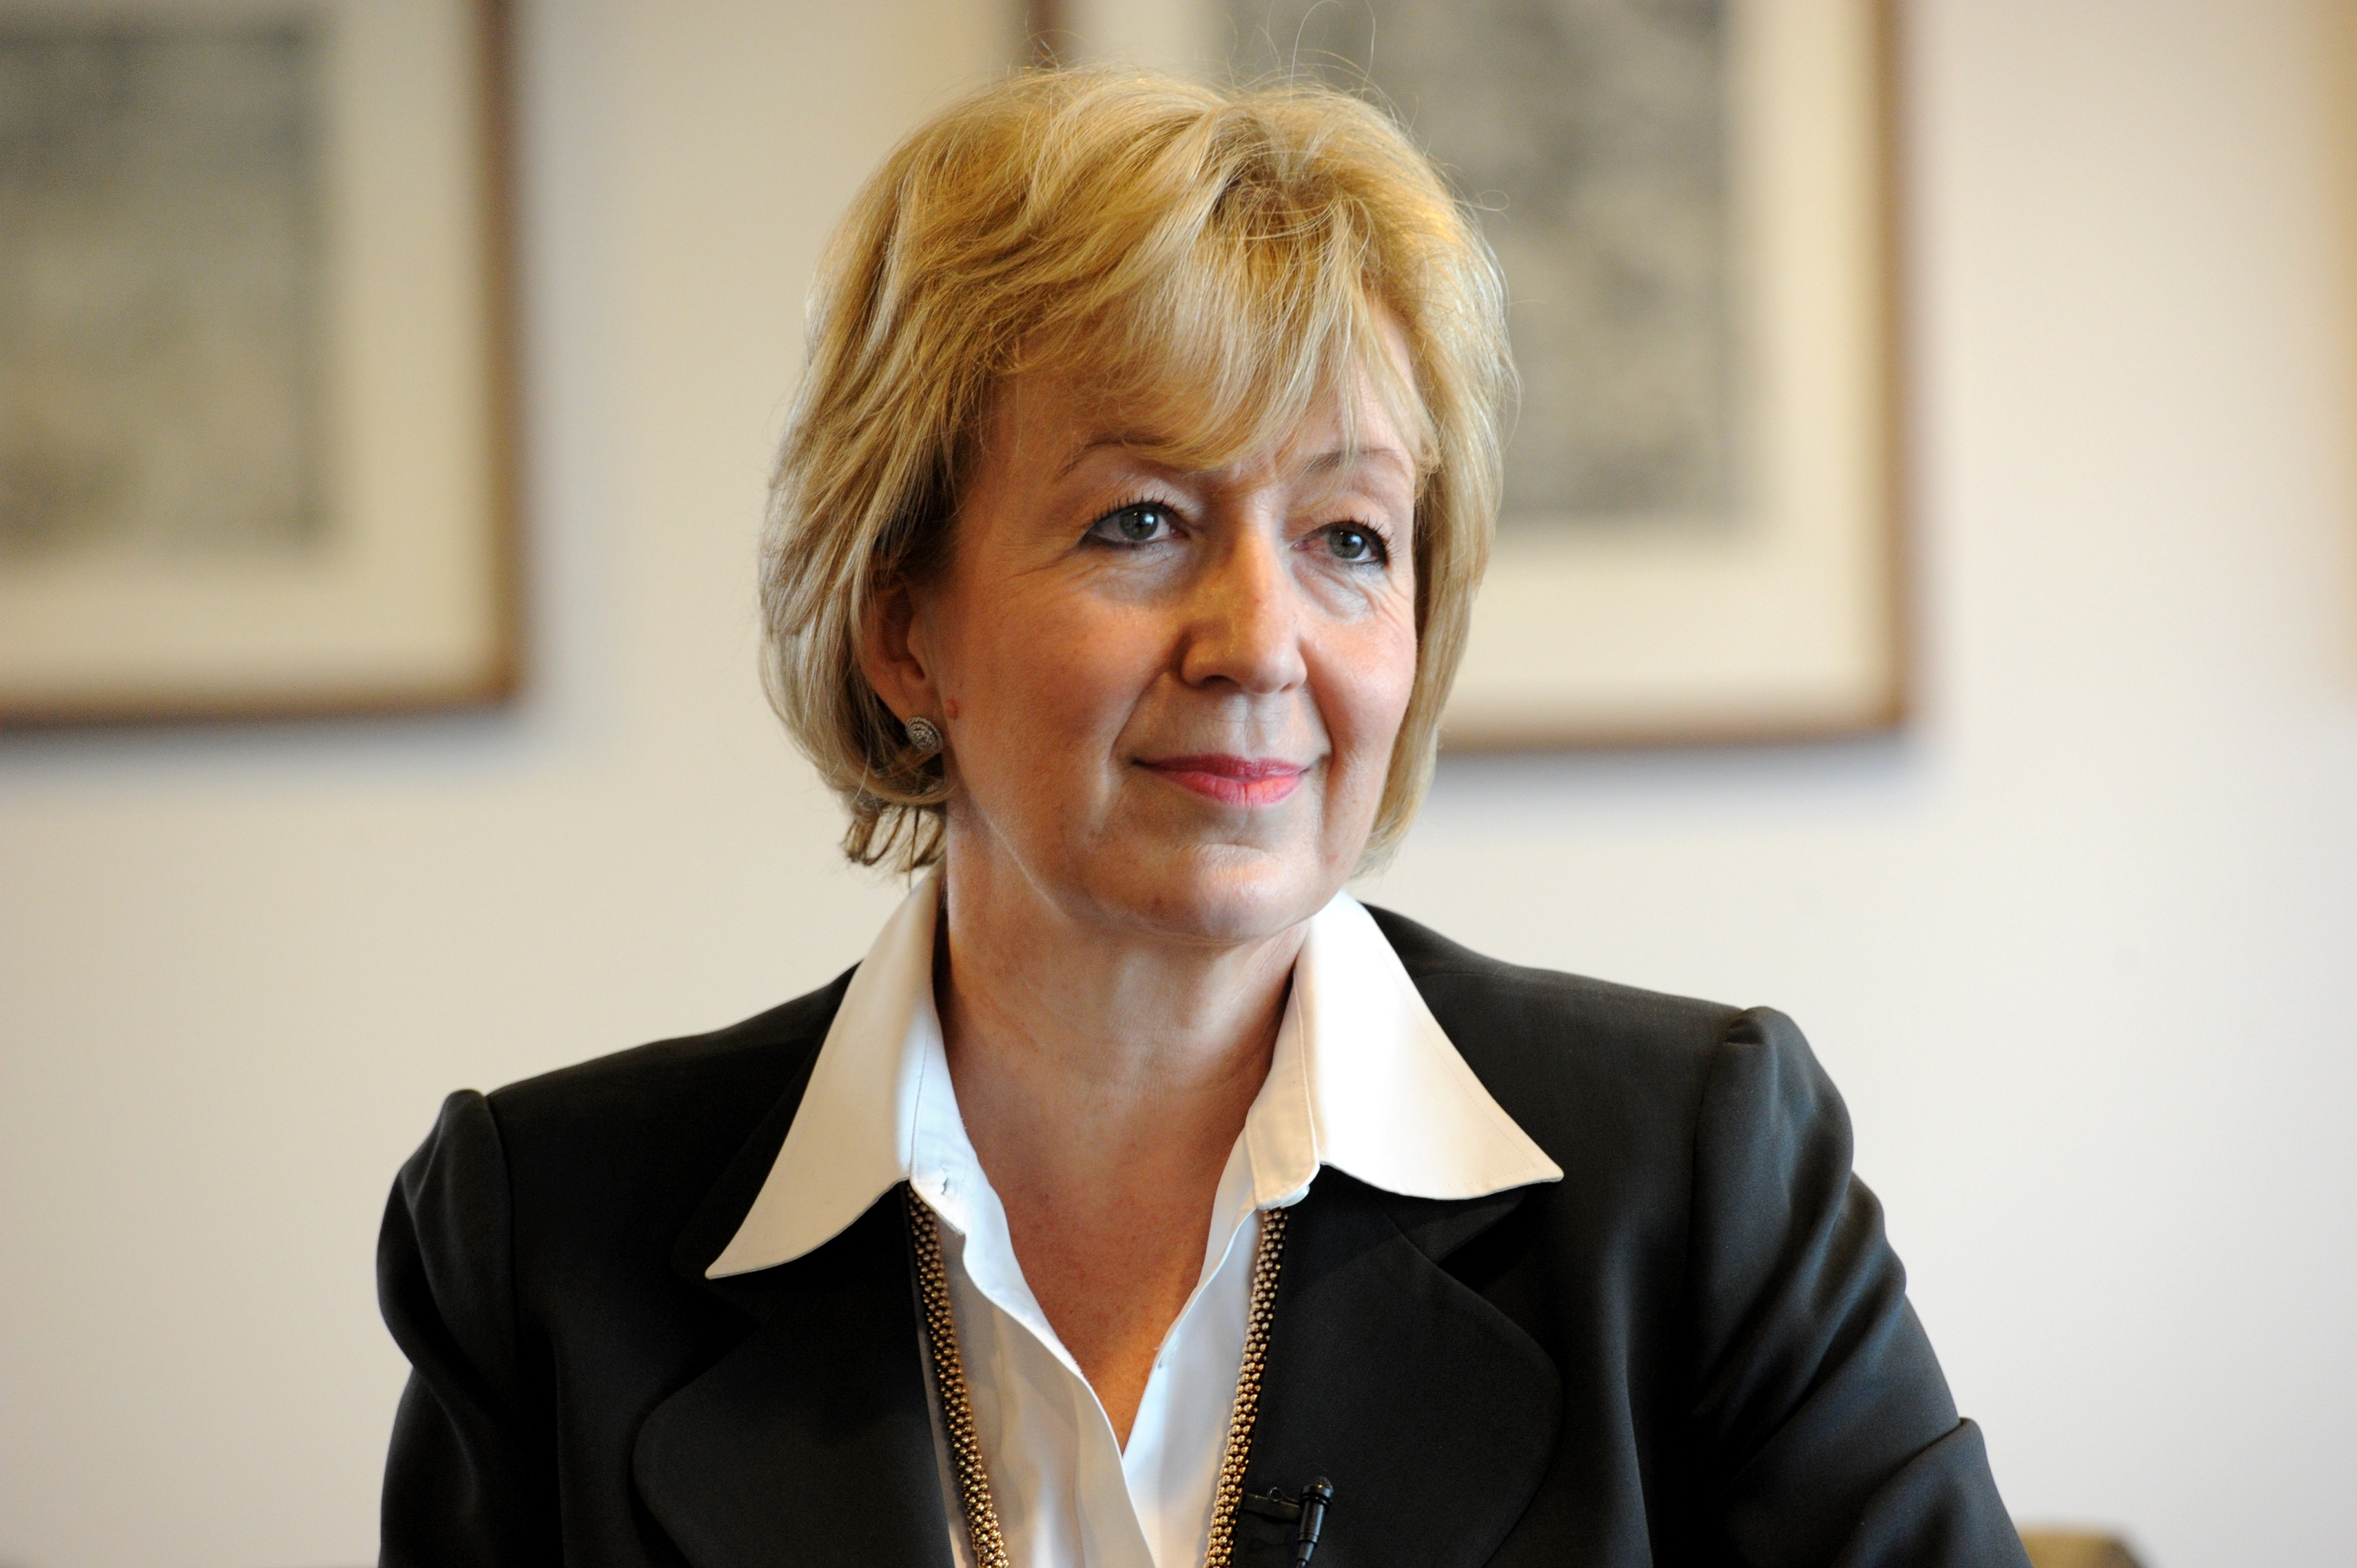 Andrea Leadsom, secretary for state for Business, Energy and Industrial Strategy (BEIS).